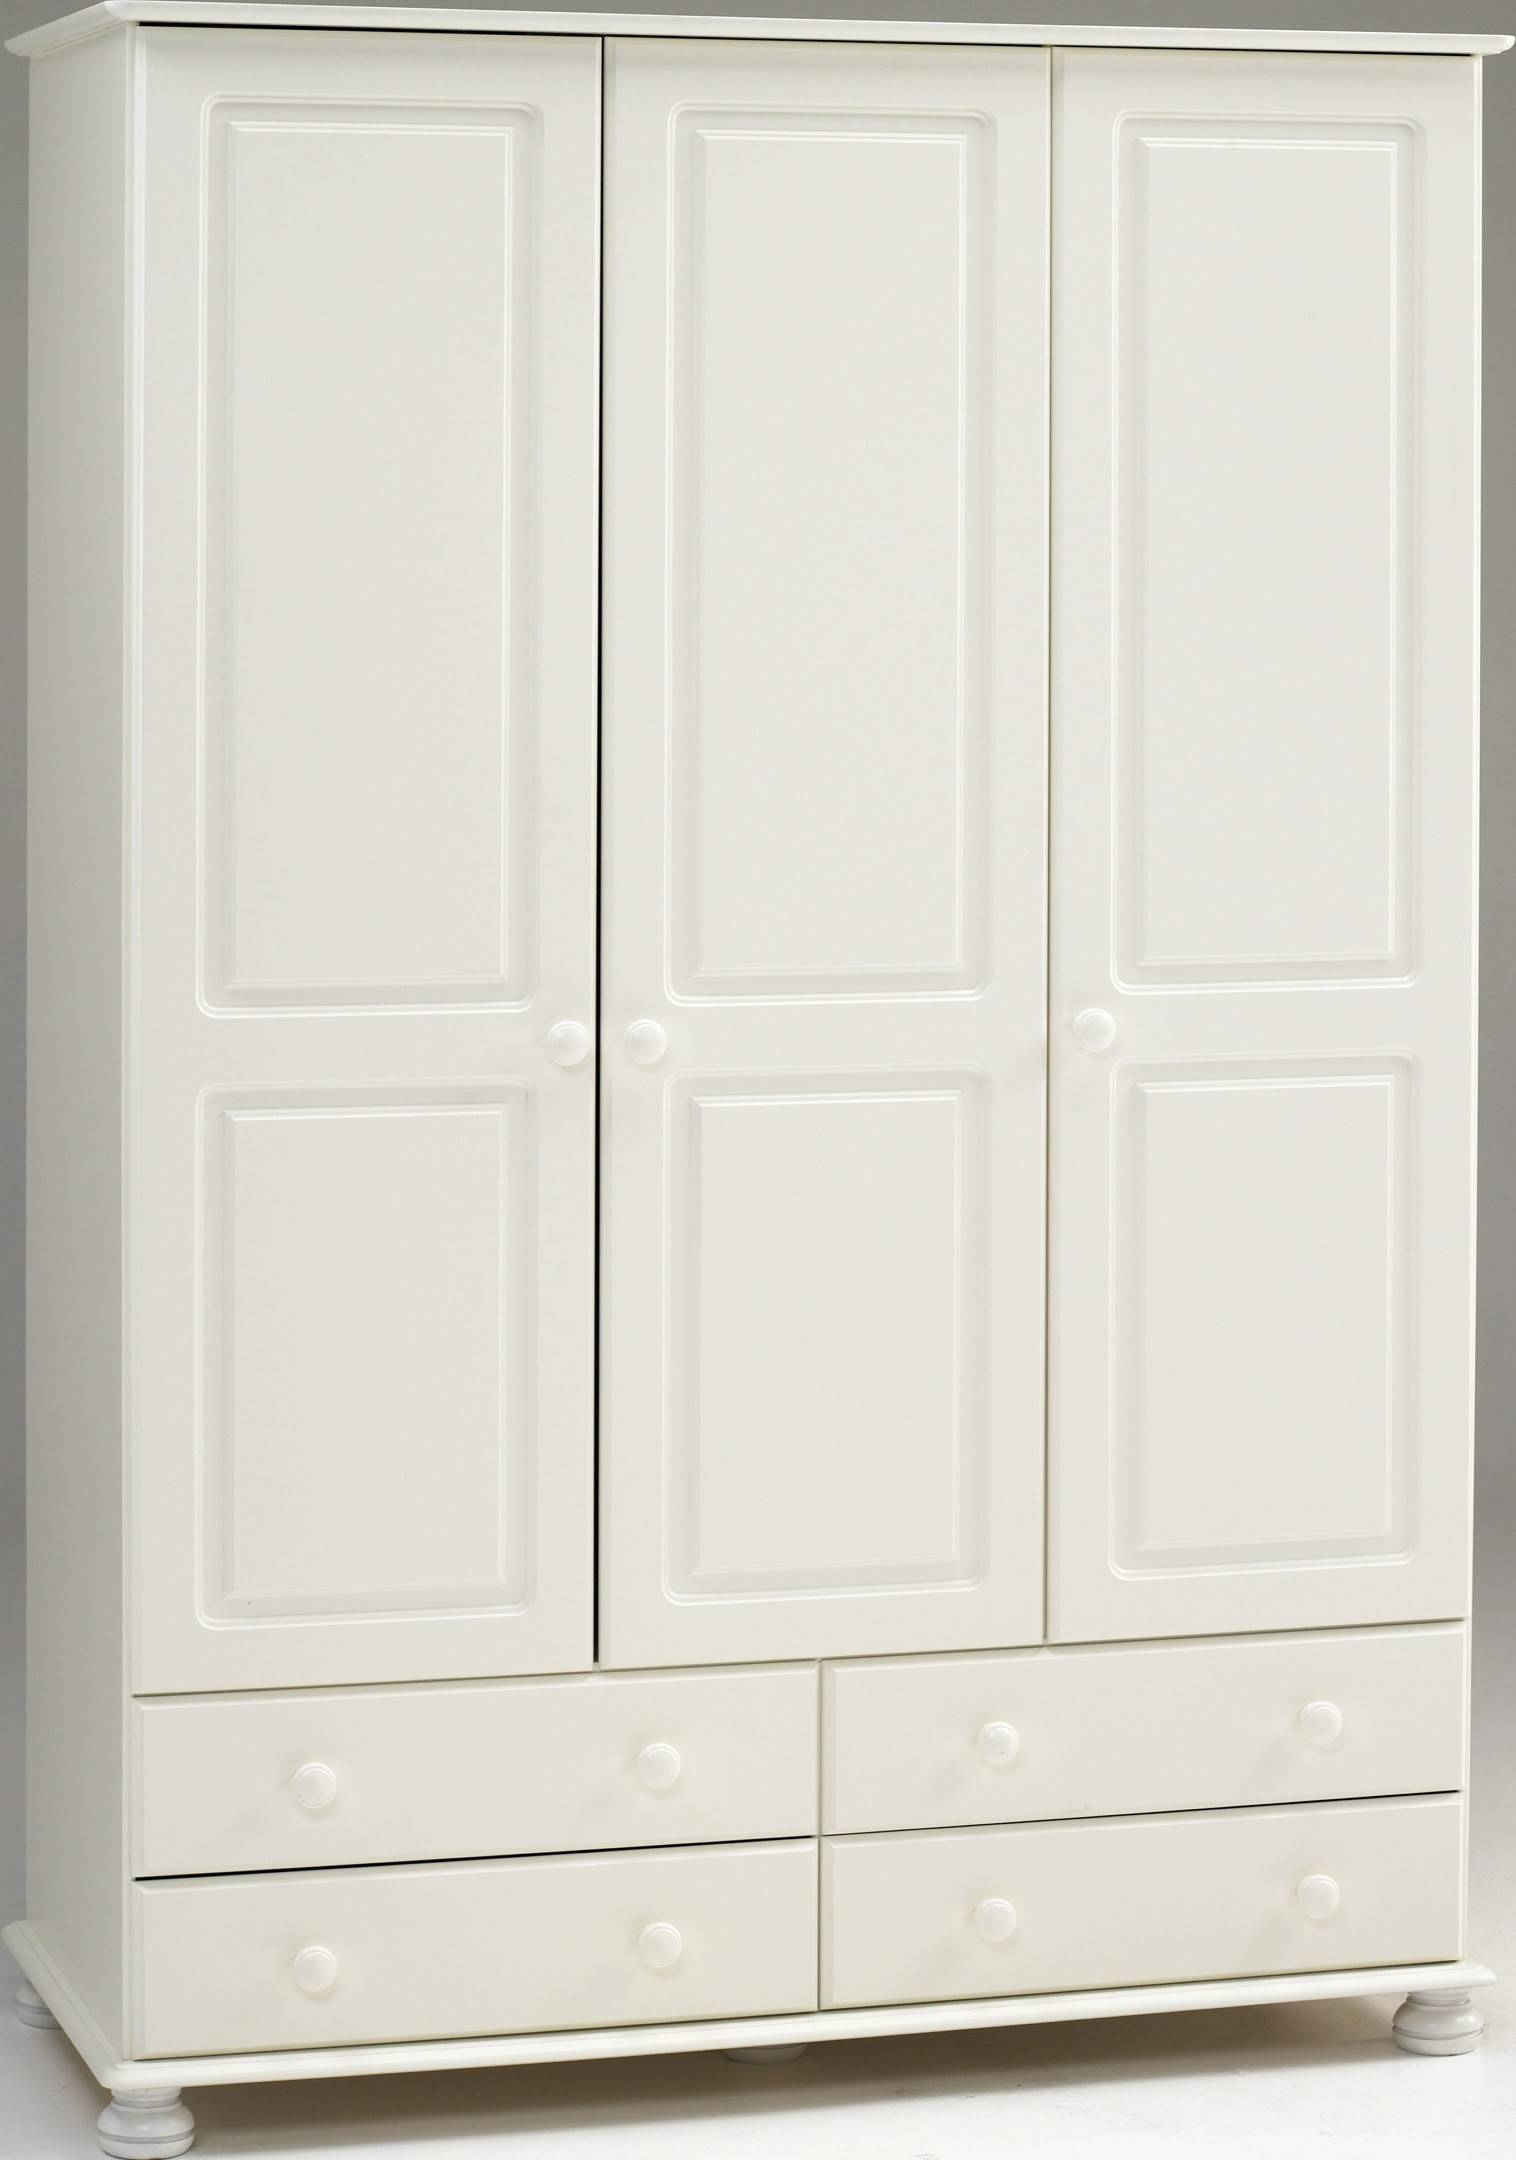 Steens Richmond White 3 Door 4 Drawer Wardrobe With 3 Door White Wardrobes With Drawers (View 13 of 15)